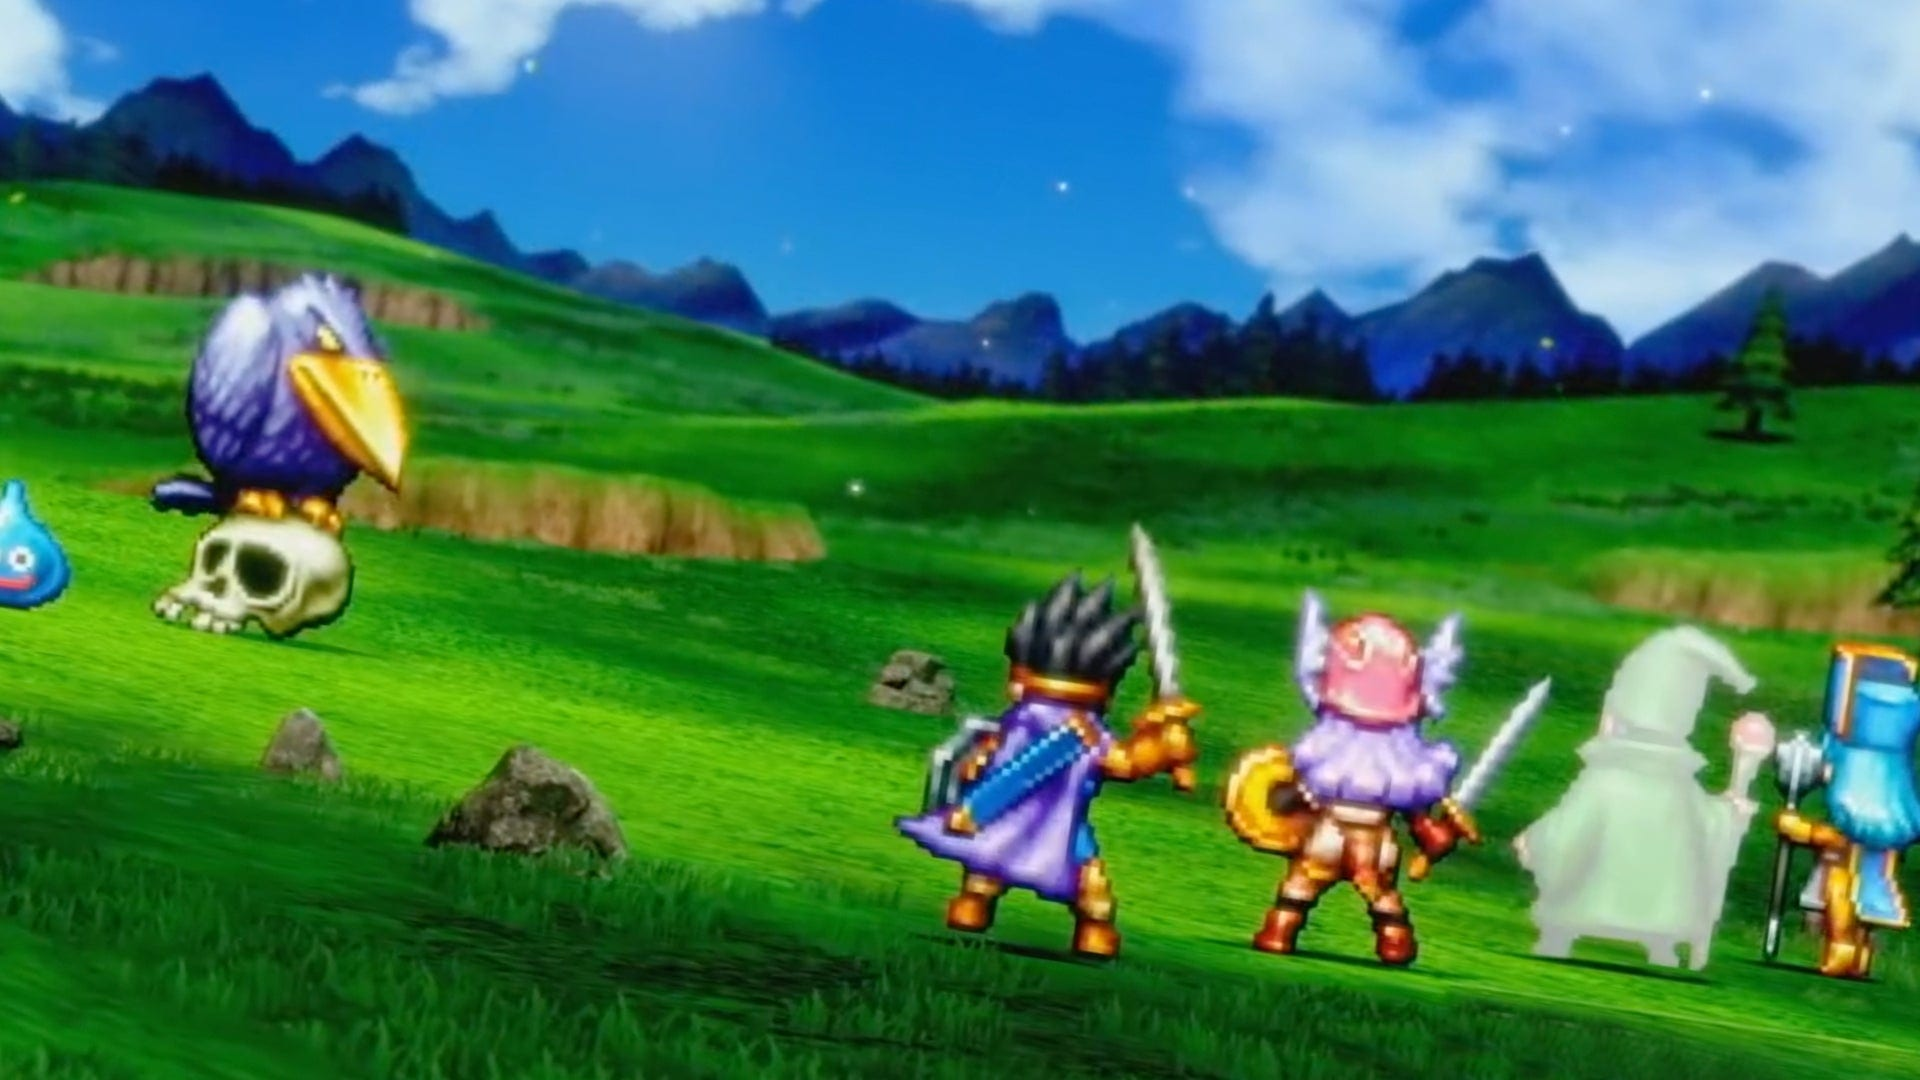 Dragon Quest 3 Remake Release Date